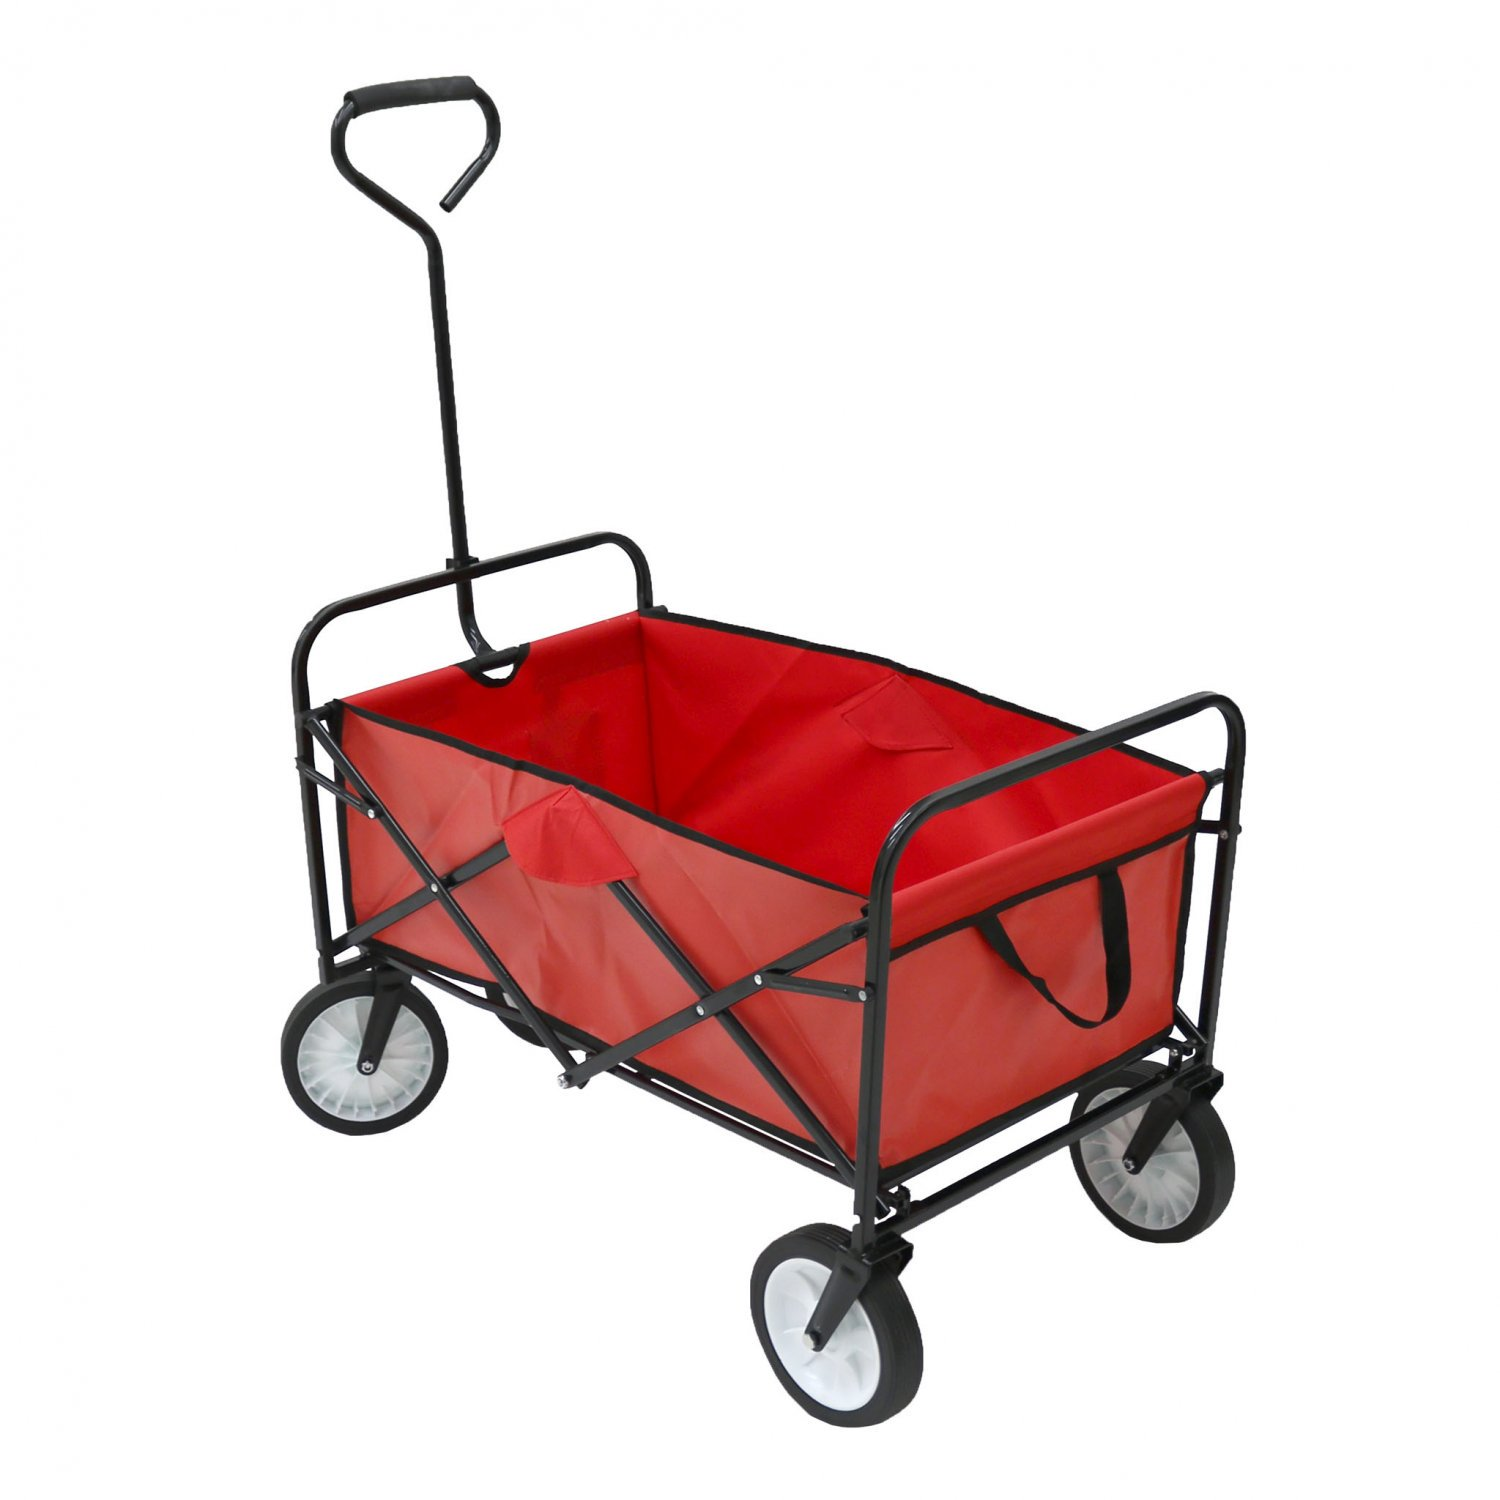 Red Heavy Duty Foldable Garden Trolley Cart Wagon Truck